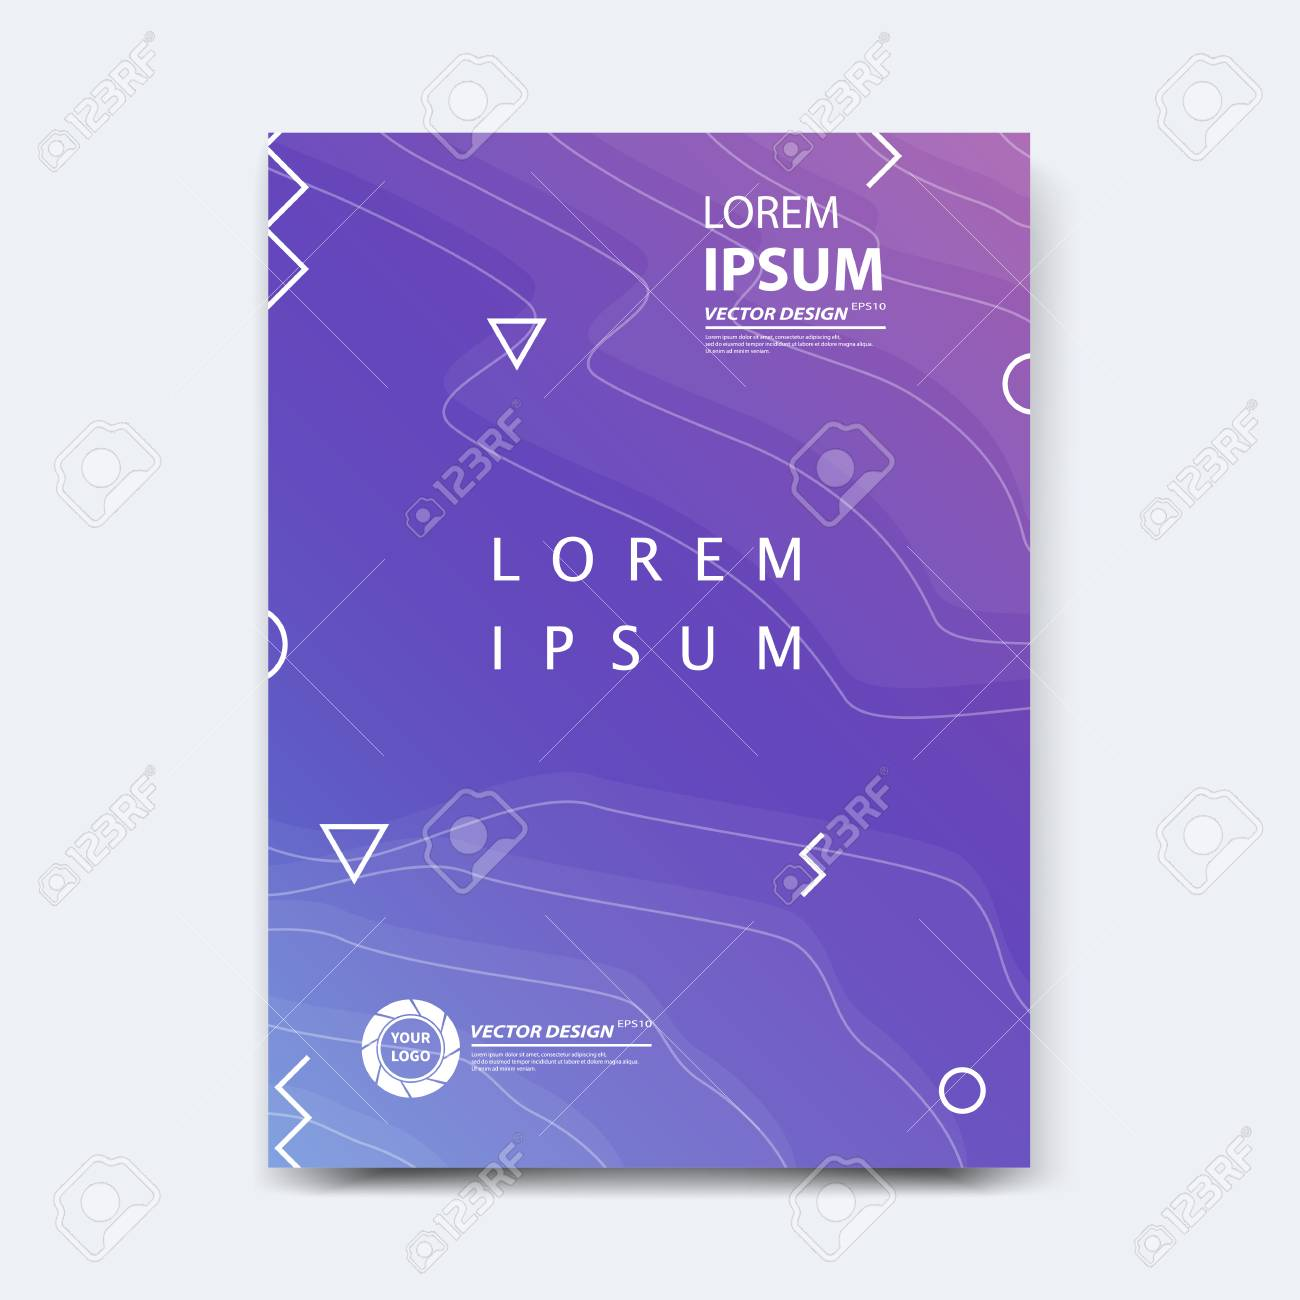 Abstract vector design for cover, poster, banner, flyer, business card, magazine annual report, title page, brochure template layout or booklet .A4 size with geometric shapes on white background. - 104581713